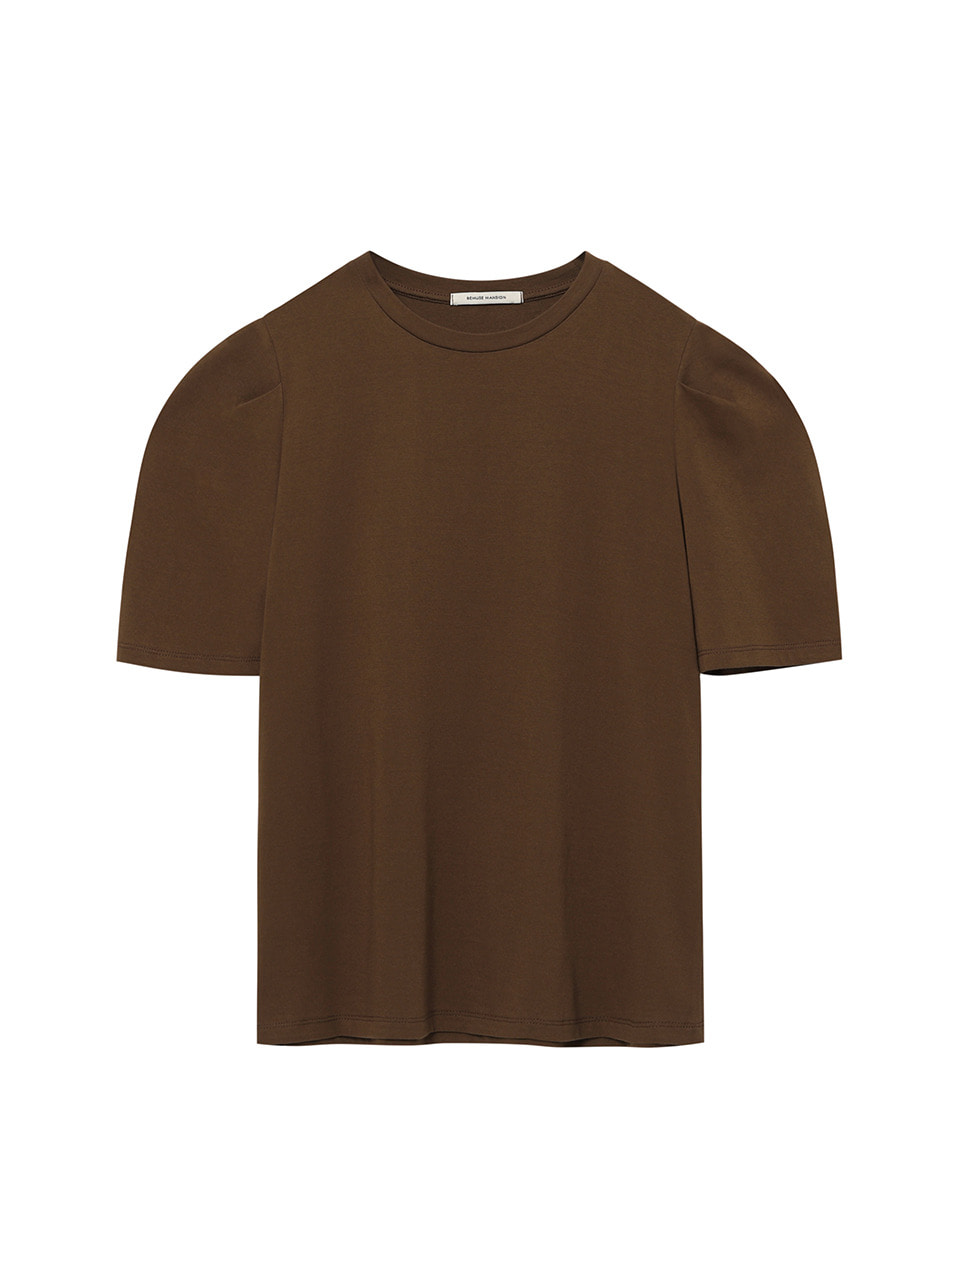 Summer curved tee - Brown